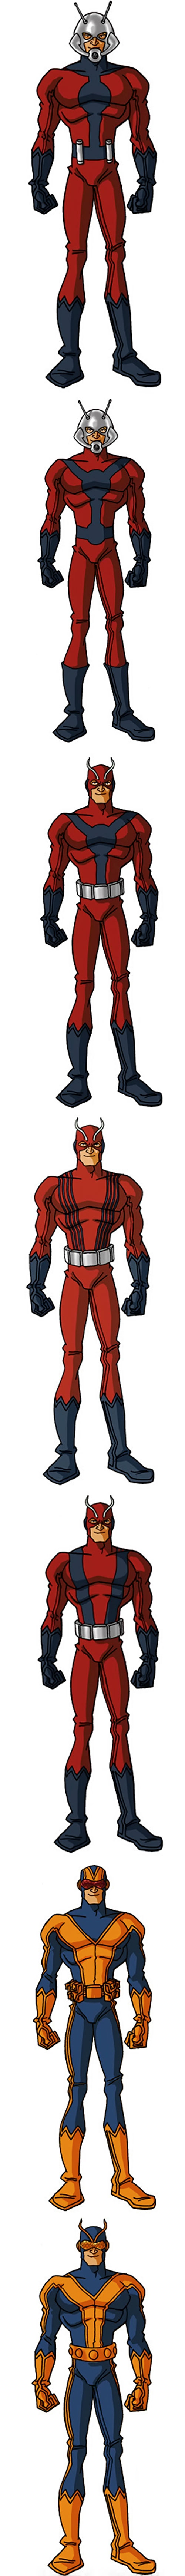 Early costumes of Henry Pym of the Avengers as Ant-Man and Giant-Man, by RonnieThunderbolts